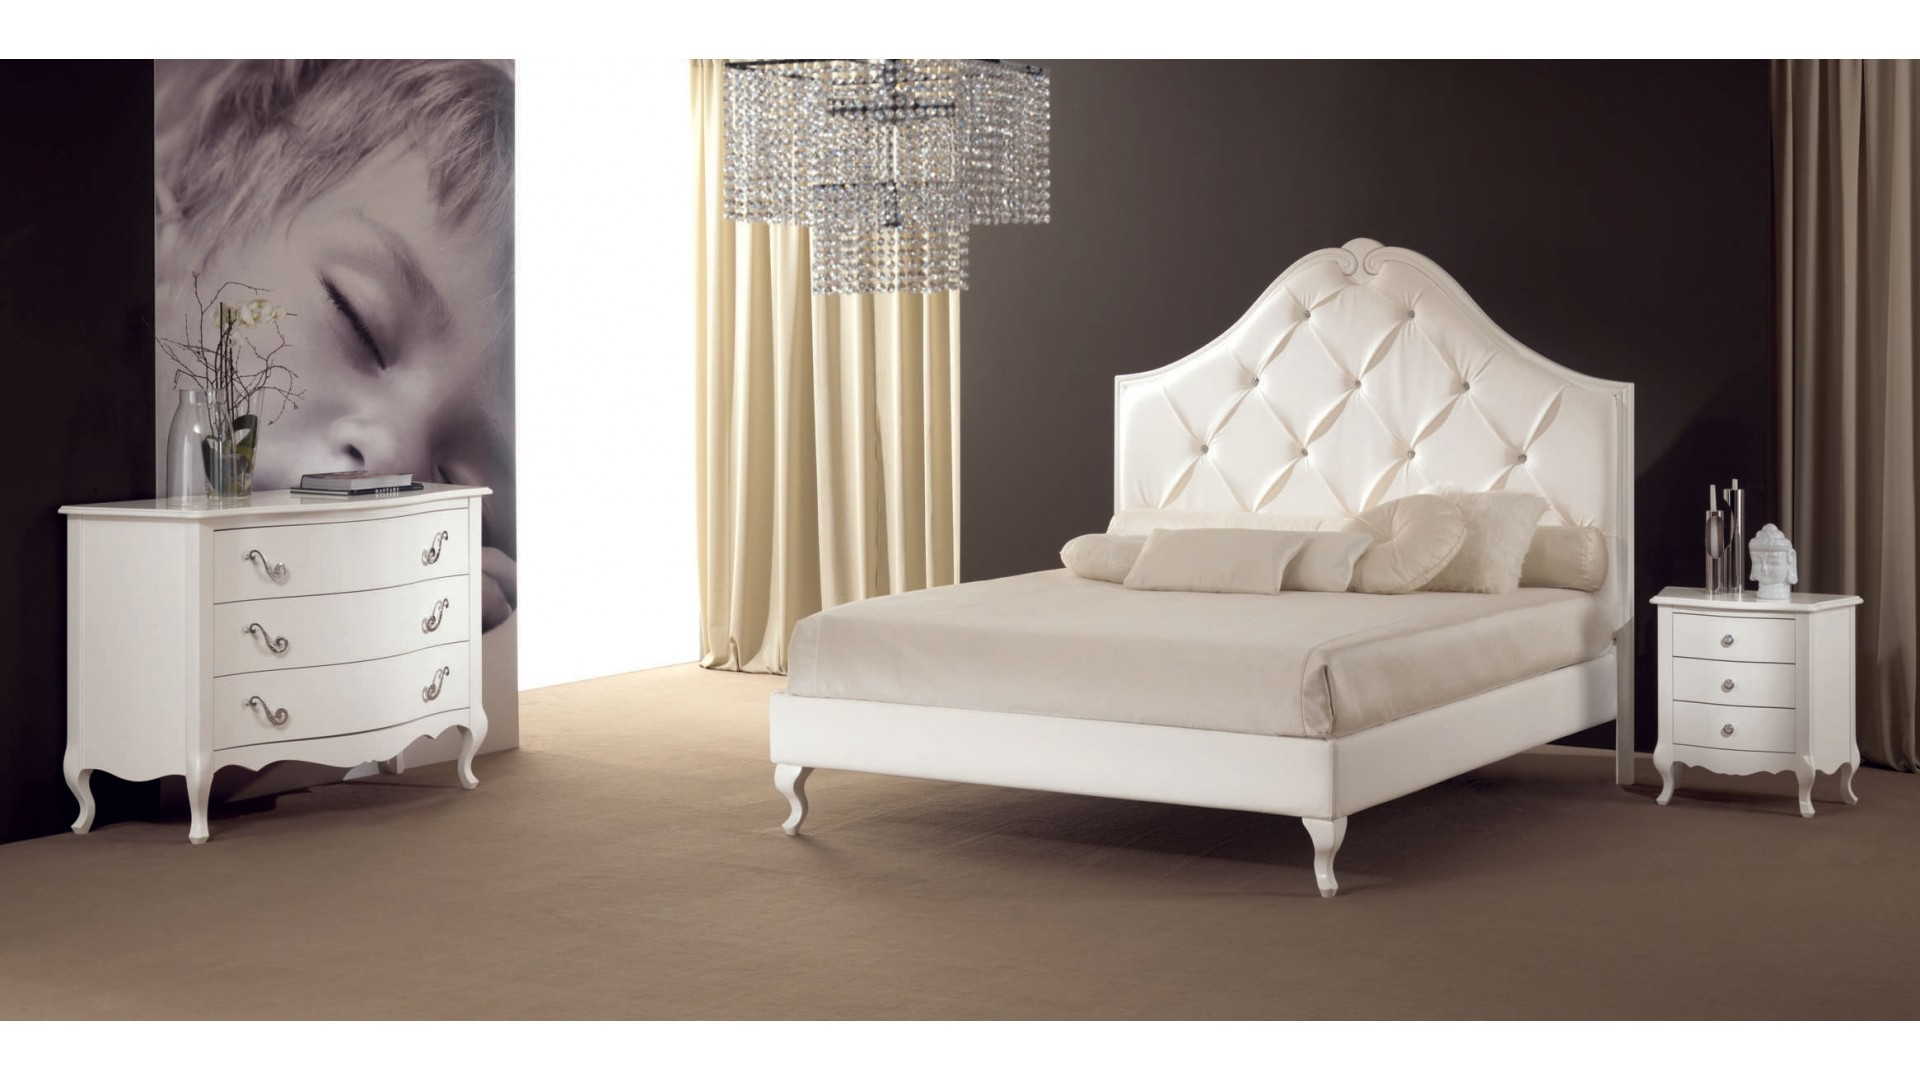 Lit double chambre adulte PERSONNALISABLE Maddy/K - PIERMARIA